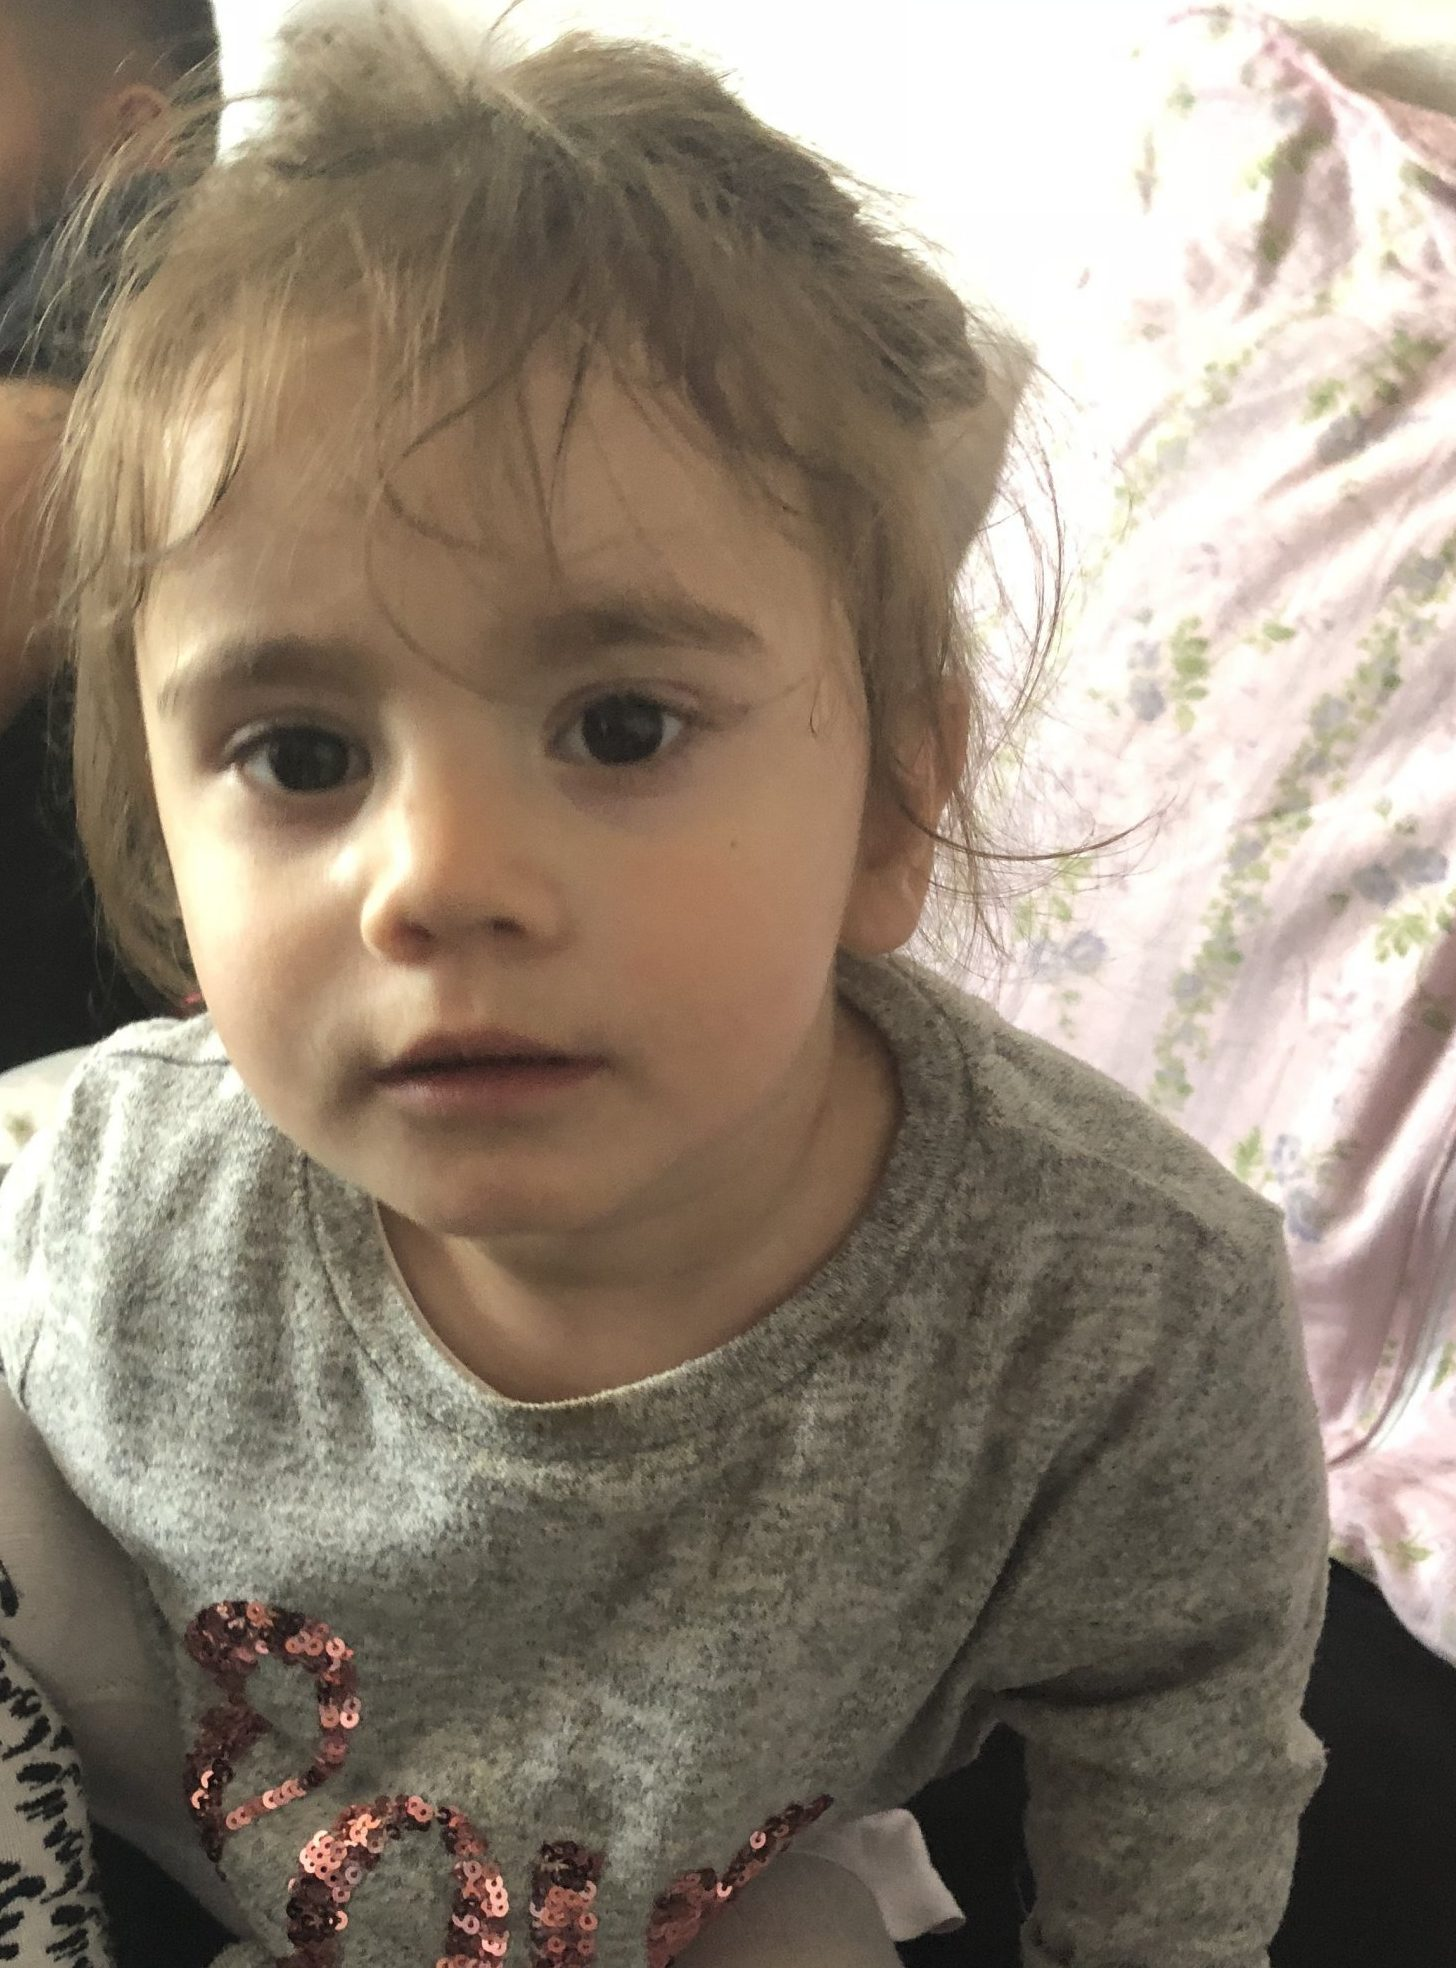 Maria Tudorica. (Picture: Met Police) Police are urgently appealing for information to trace a 17-month-old girl who was in a car when it was stolen in Newham. At around 16:37hrs on Sunday, 6 January, the girl's father met with an unknown man in Nine Acres Close, E12 with a view to selling his car. The man jumped into the car and drove away. The seller's daughter was in the front passenger seat of the car when it was taken. She is Maria Tudricai, a Romanian girl from the local area. She was wearing a white top and red bottoms. The car, a black Audi A5, registration number FY58UAZ was later found abandoned nearby in Hatherway Crescent, E12 without the child inside. The man who took the car is described as an Asian man of slim build, dressed in black clothing.